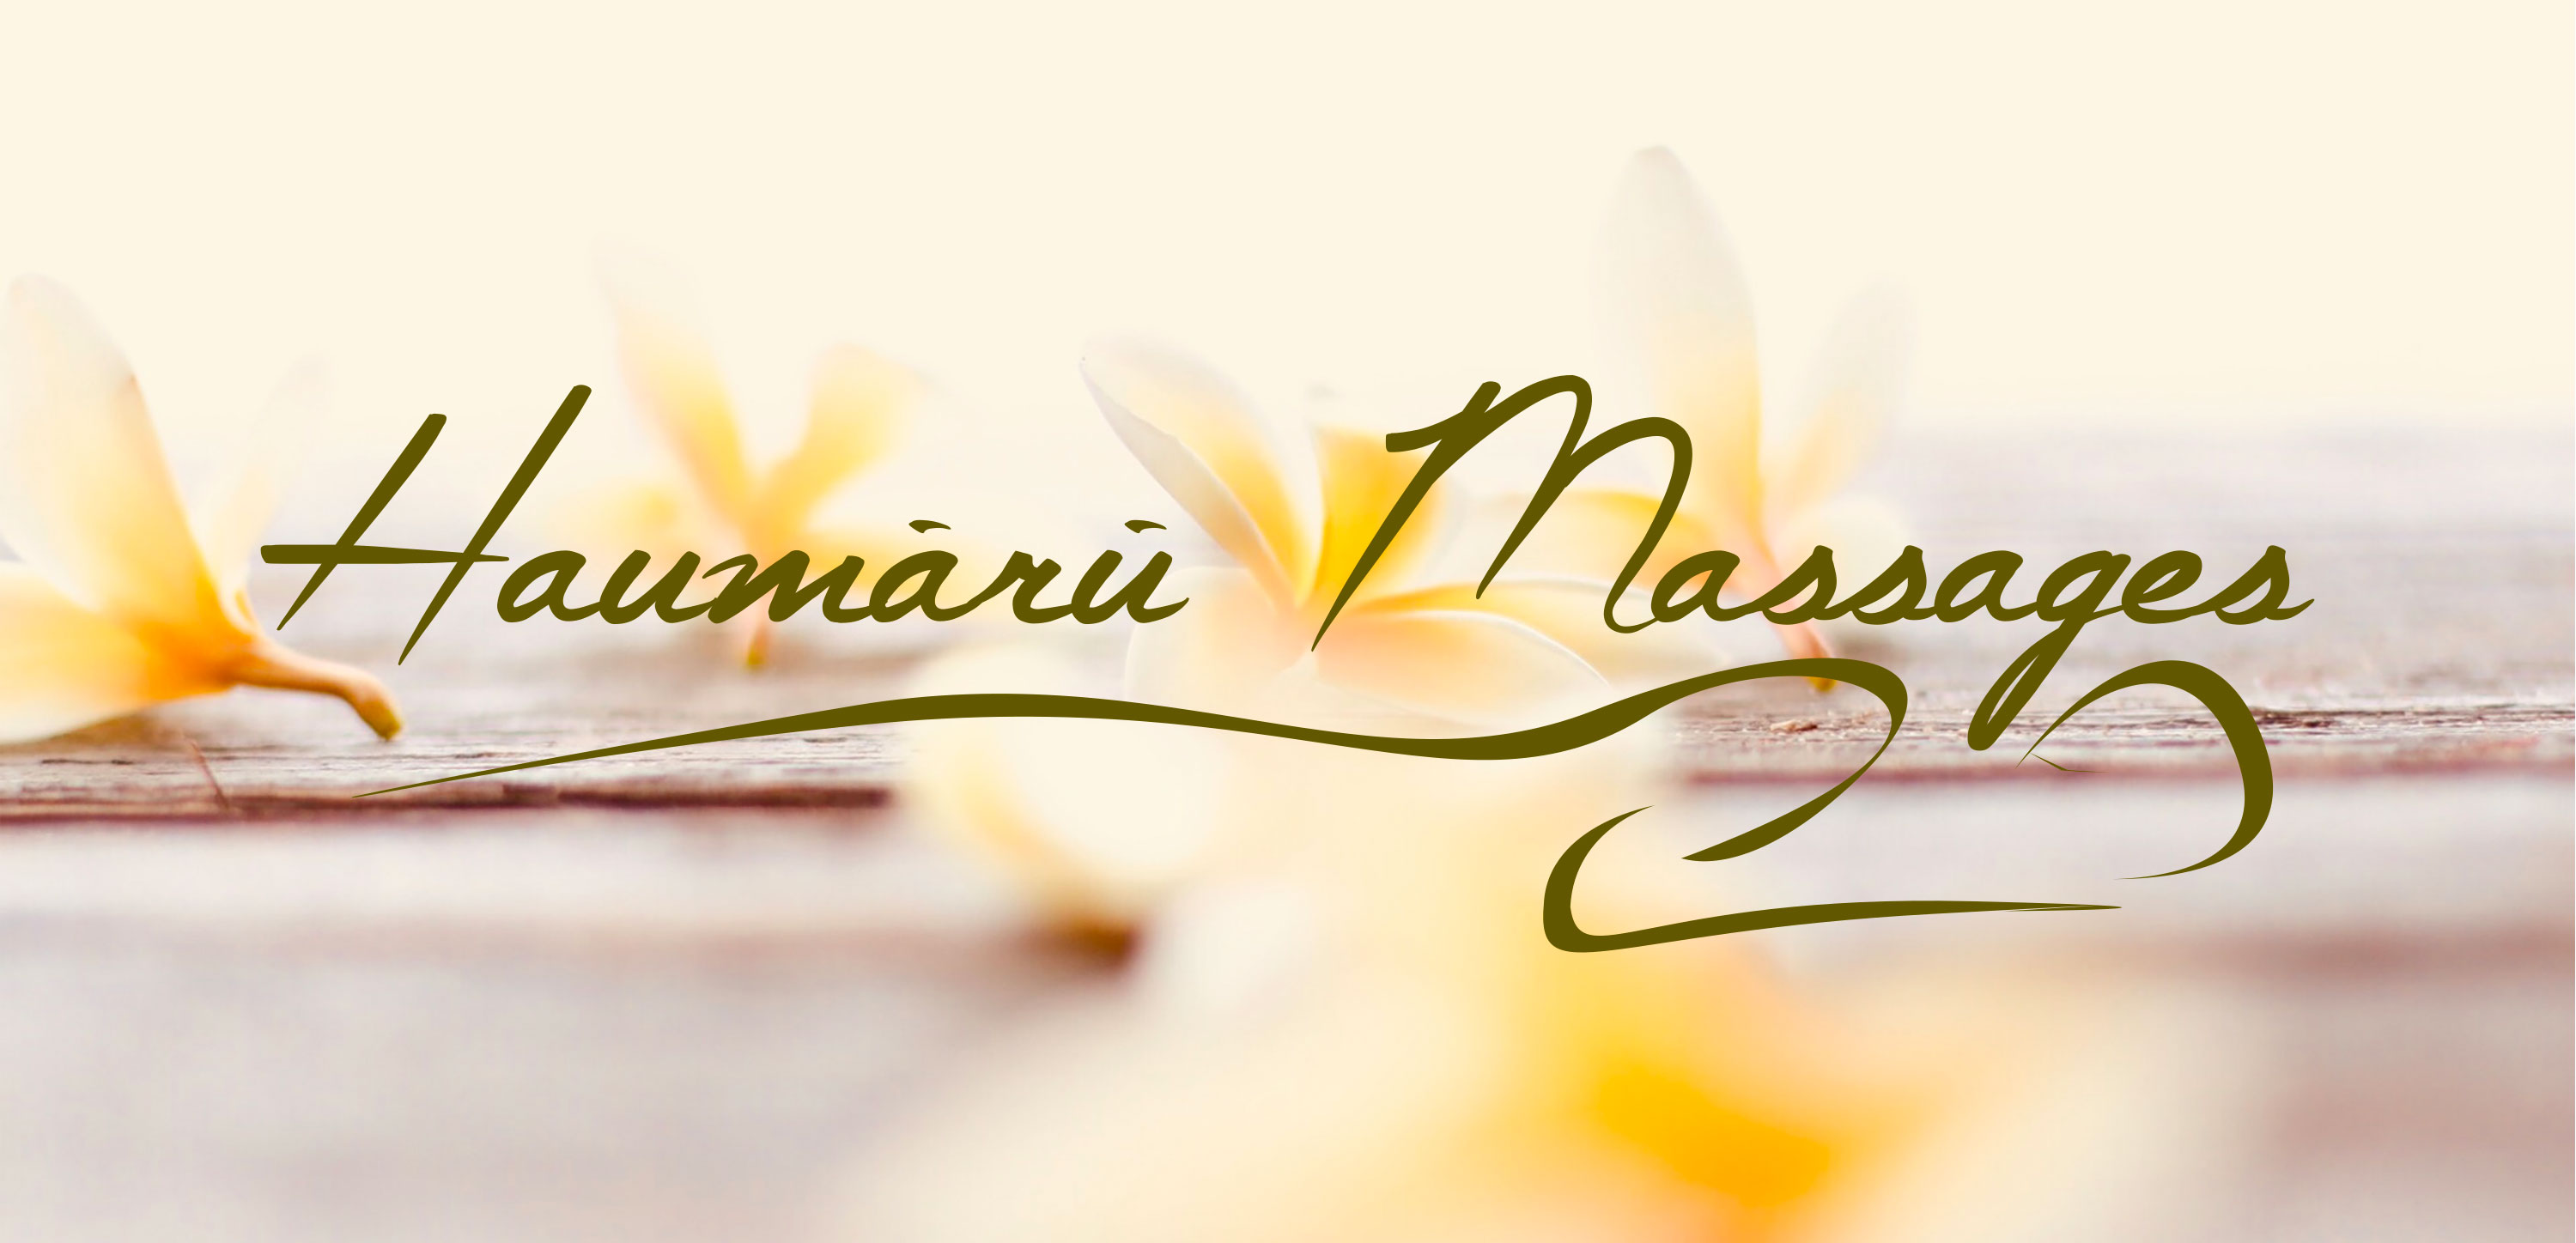 https://tahititourisme.it/wp-content/uploads/2019/09/HAUMARU-MASSAGE-1140x550.jpg